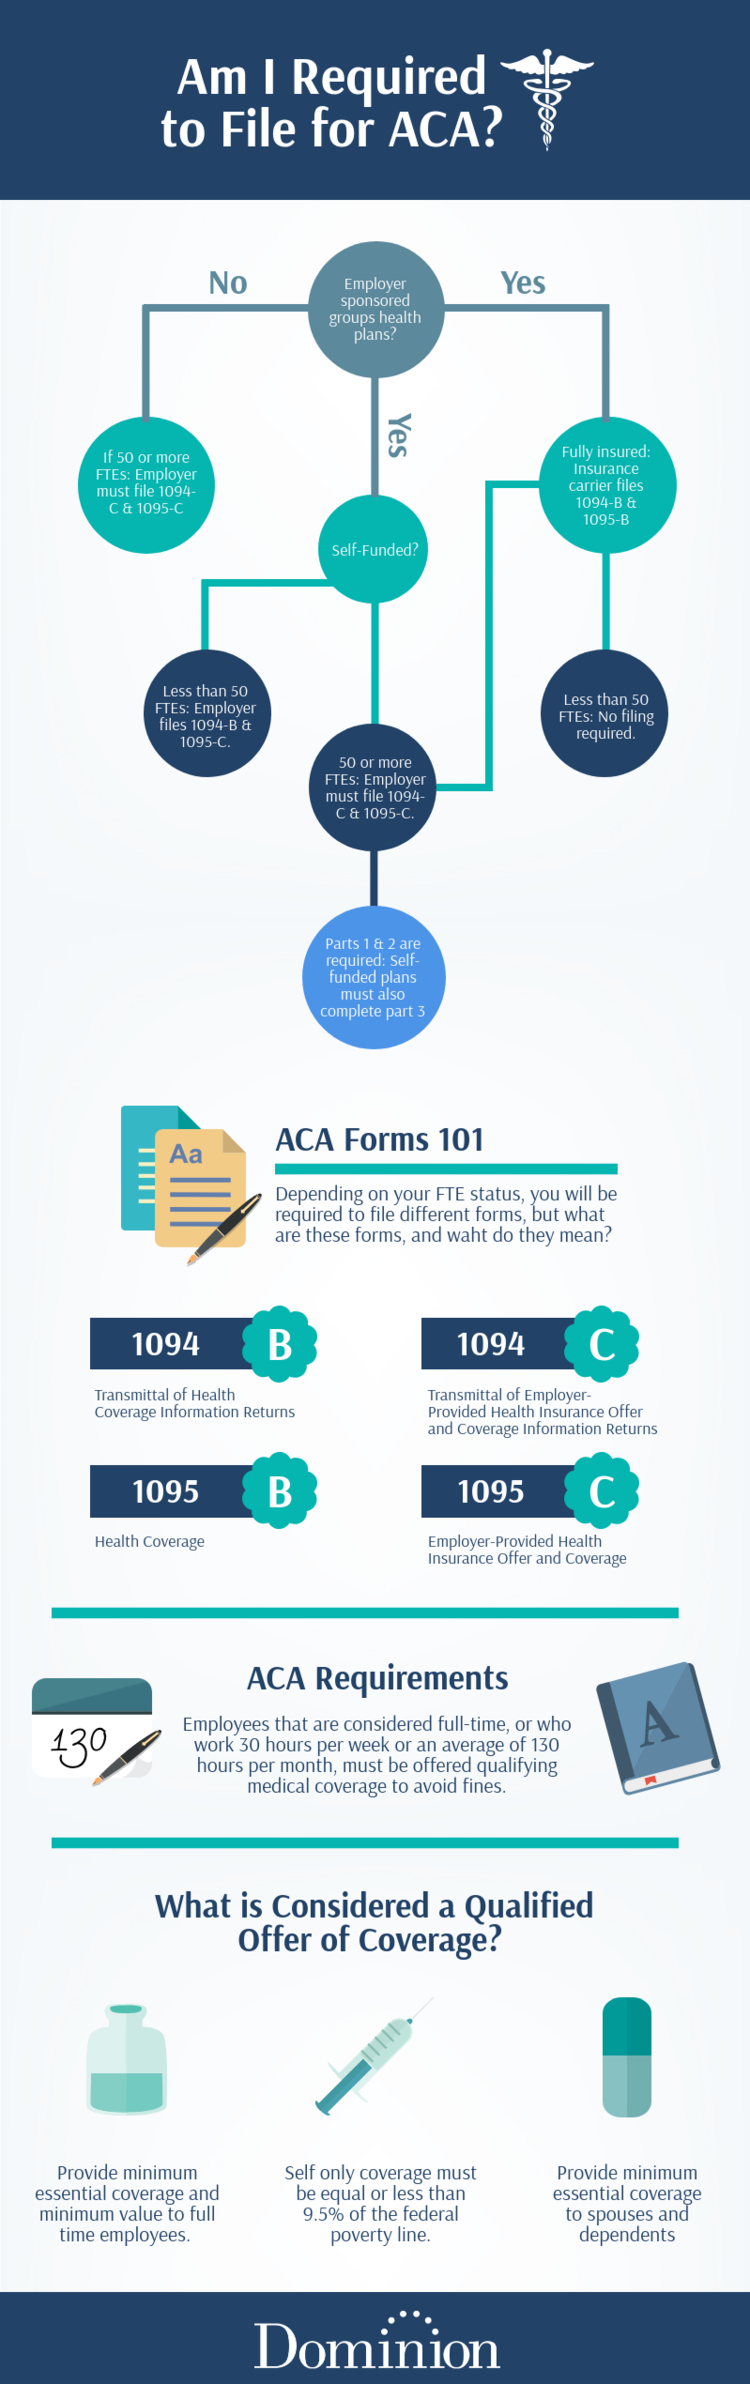 Am I required to file for ACA infographic?